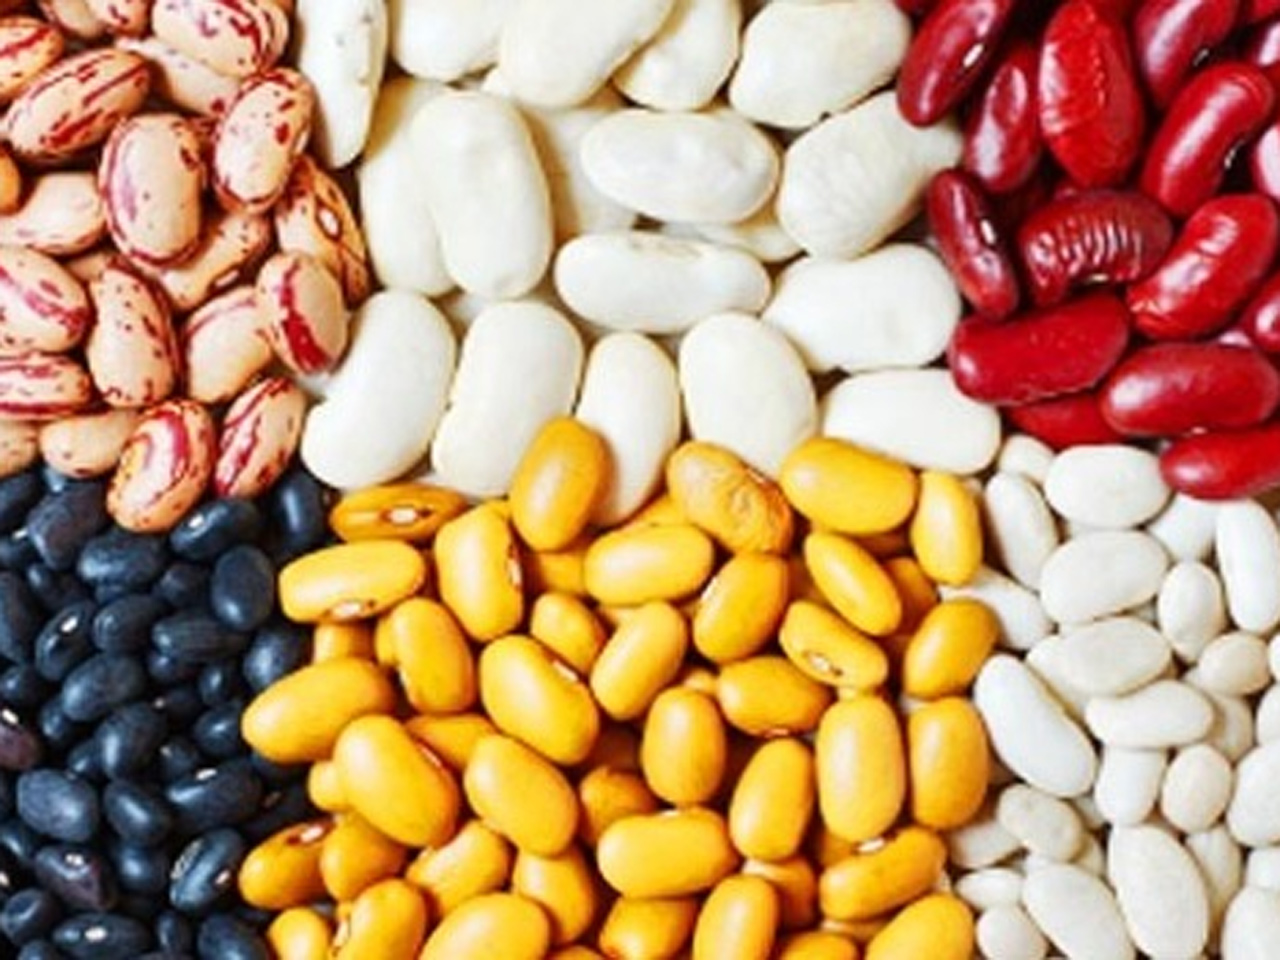 Beans may be beneficial for people with diabetes - CBS News